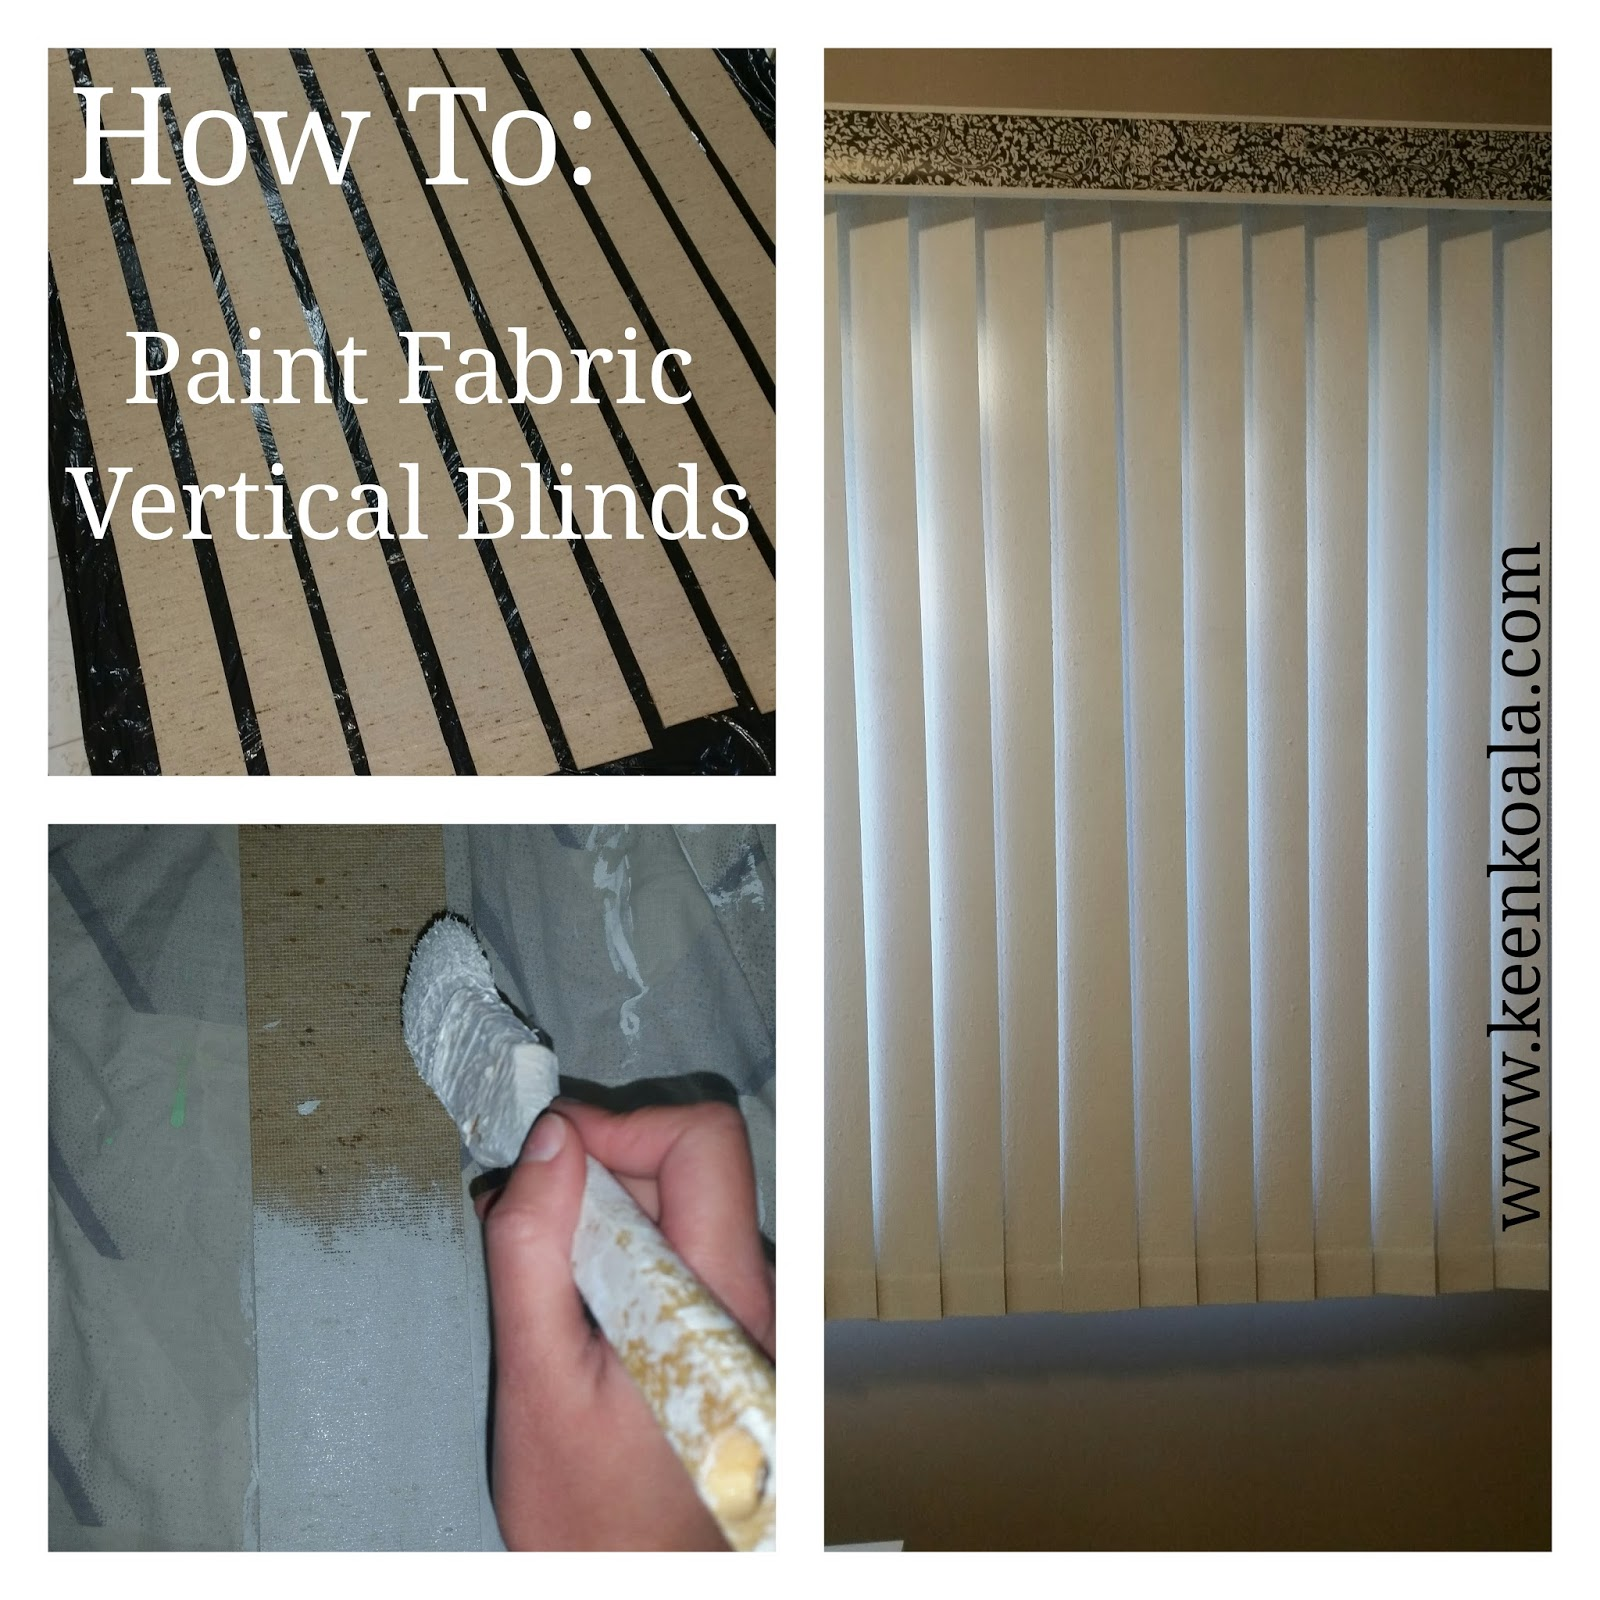 Keen Koala DIY How To Paint Fabric Vertical Blinds